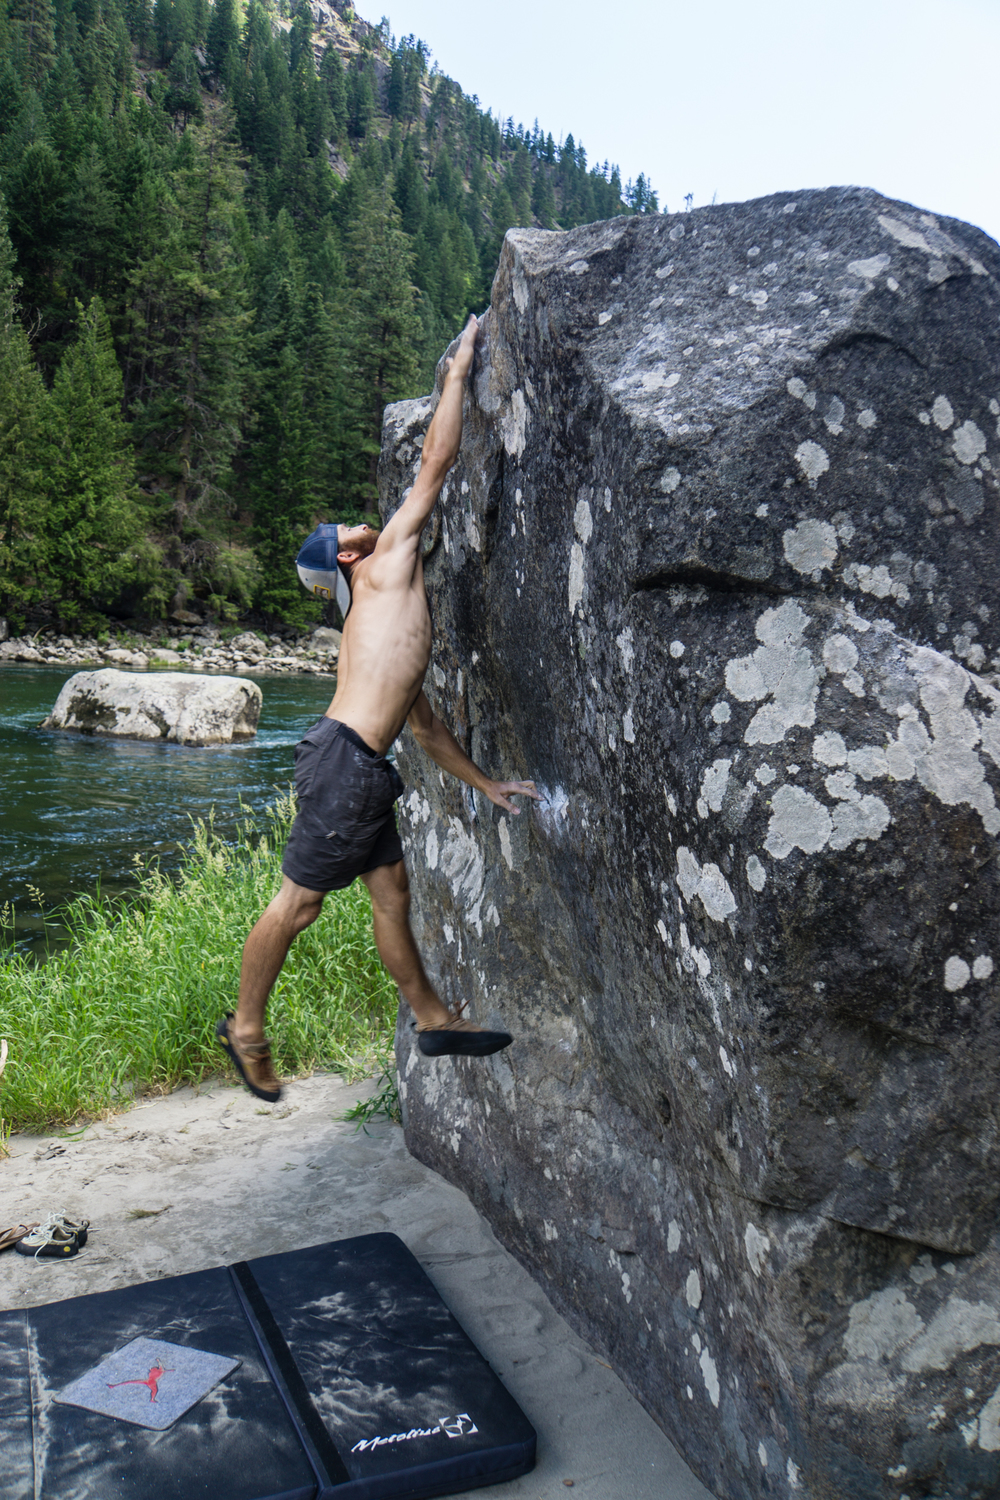 Dyno attempts in Leavenworth, WA